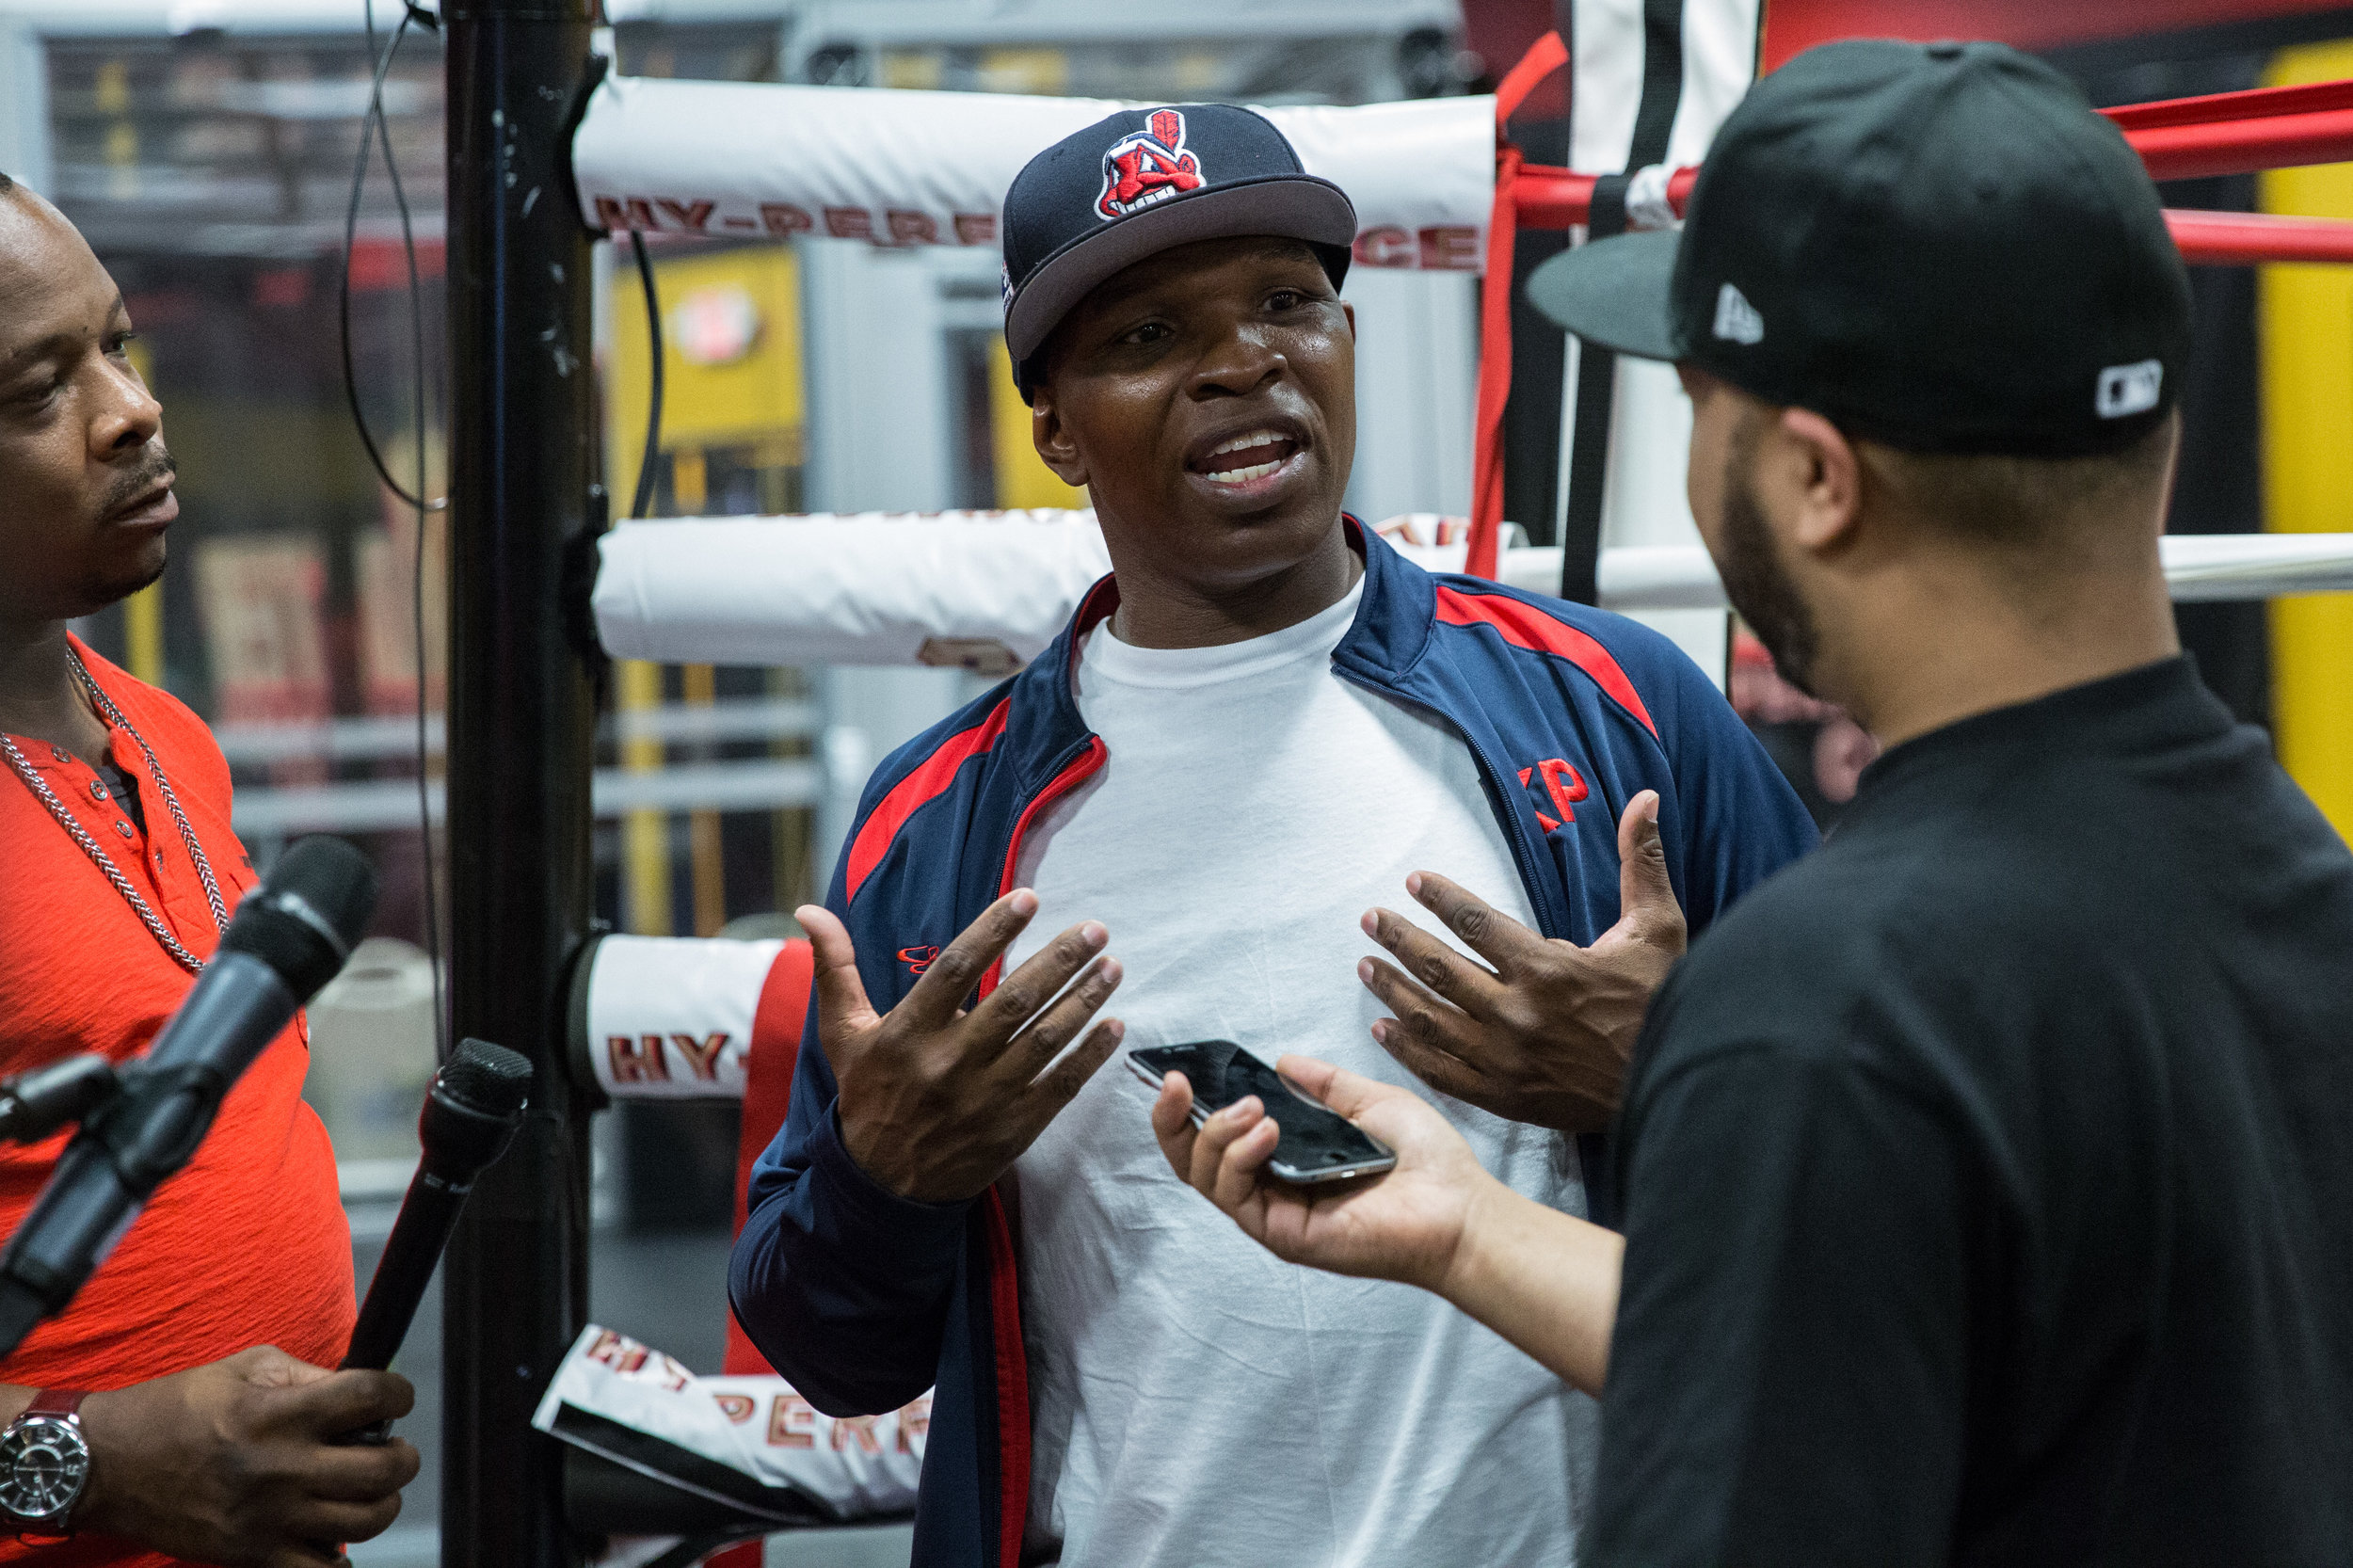 Kenny Porter talks to media during the workout. Photo Credit Ryan Greene / Premier Boxing Champions